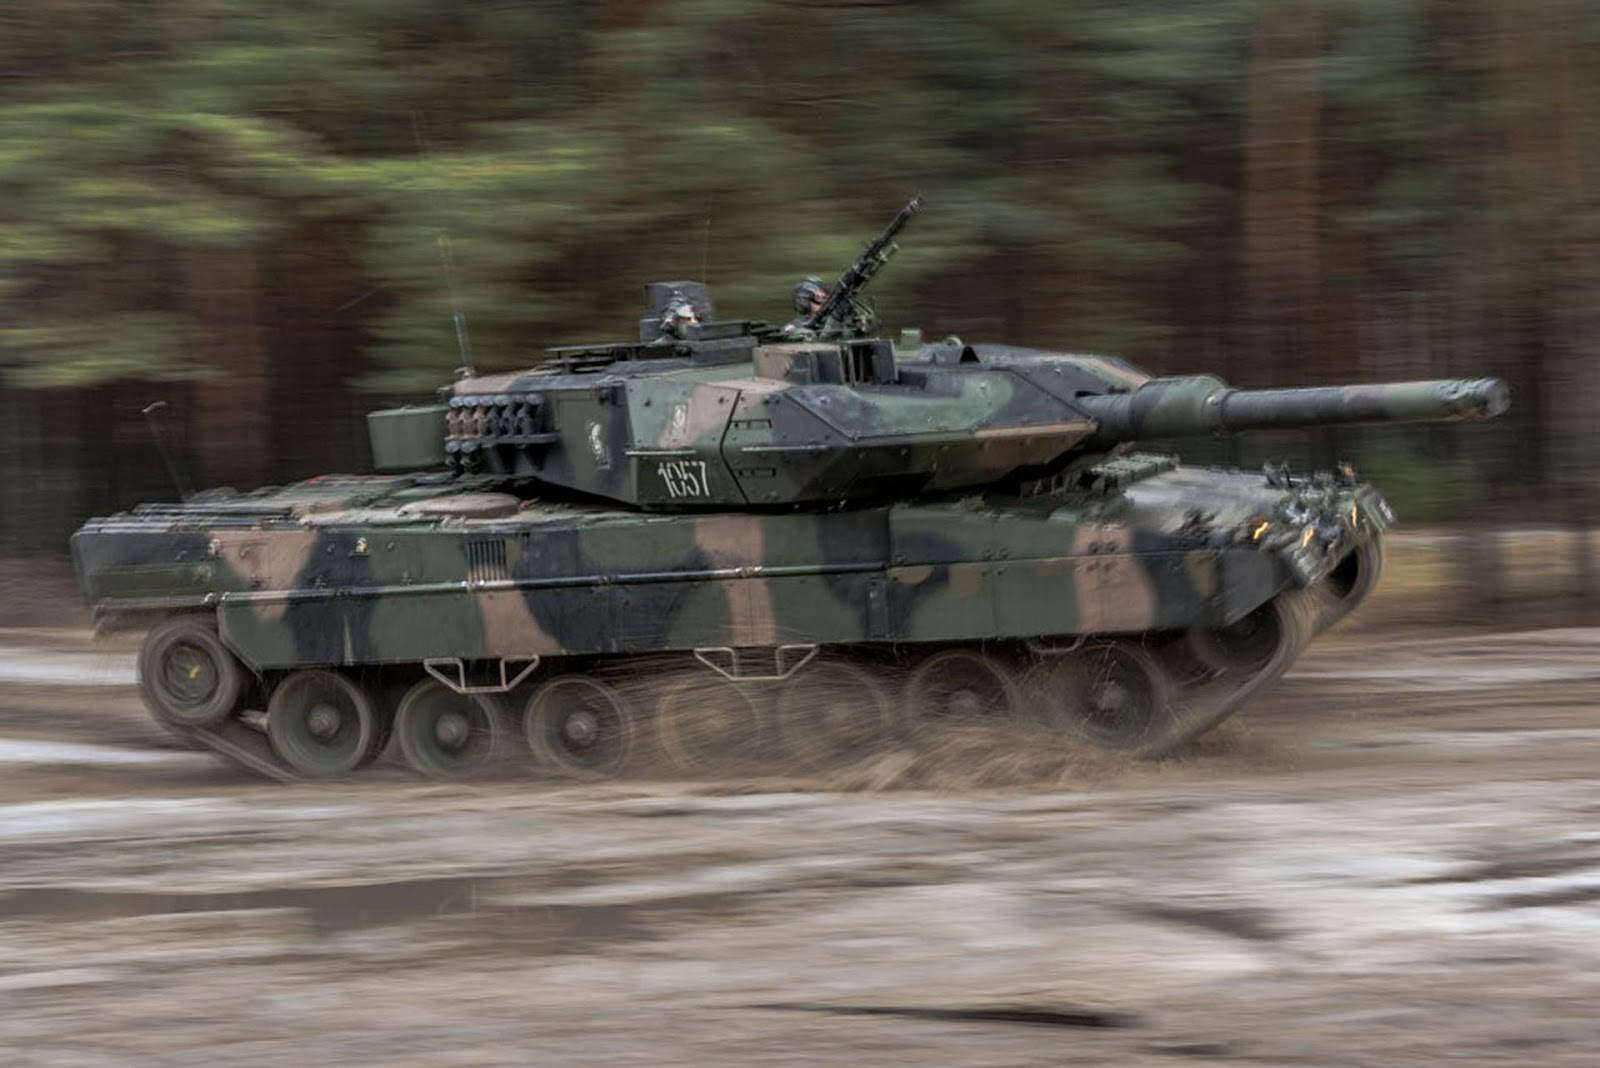 Czech army interested in acquiring Leopard 2A4 tanks in Spain 2